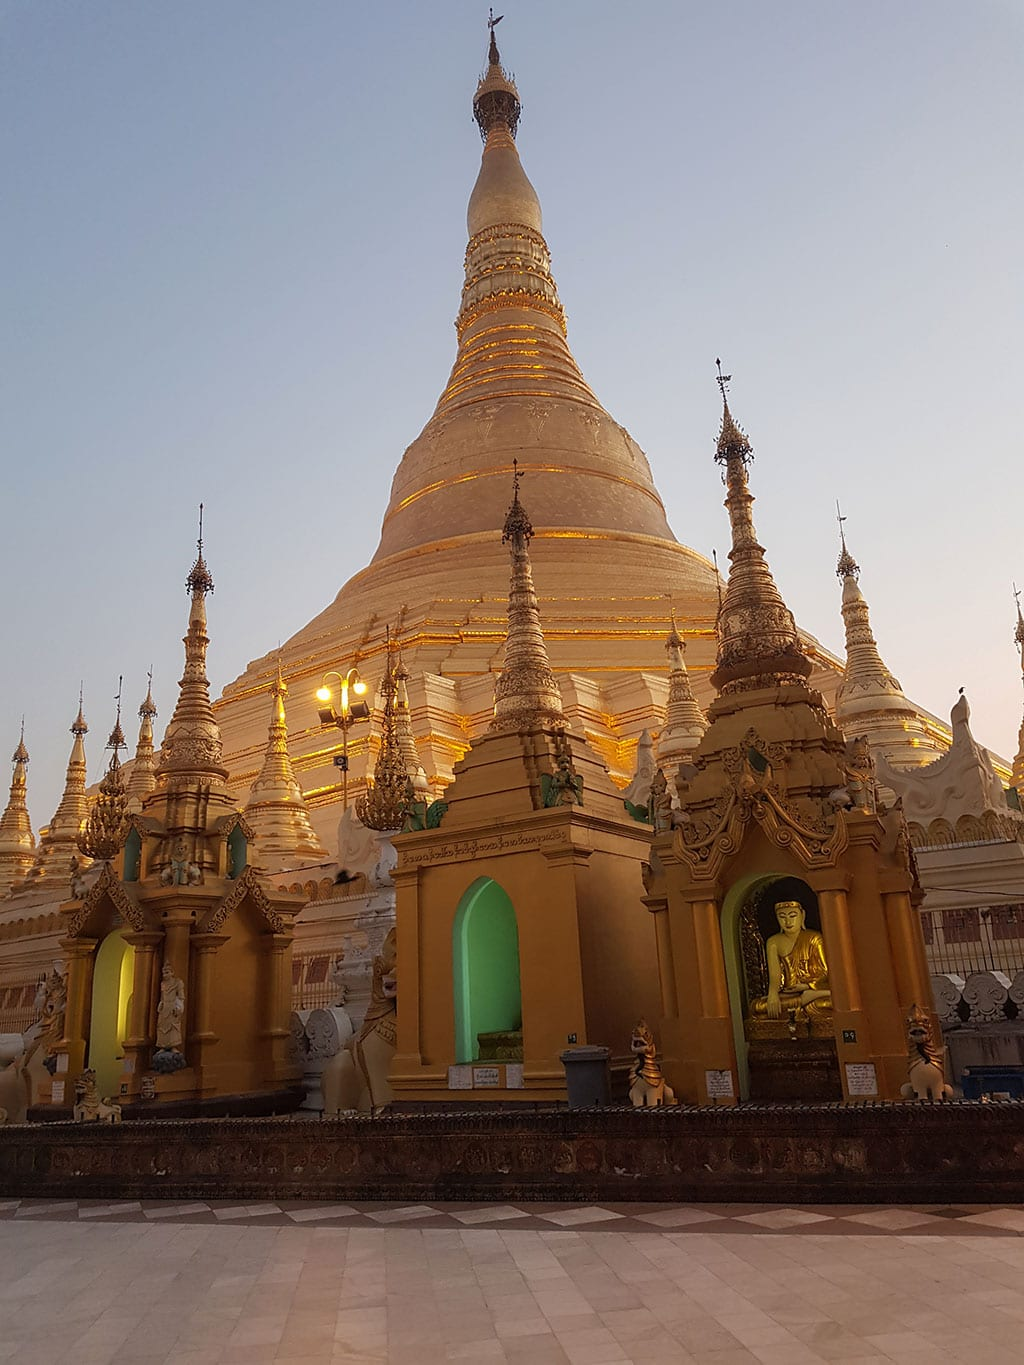 Facts about Myanmar